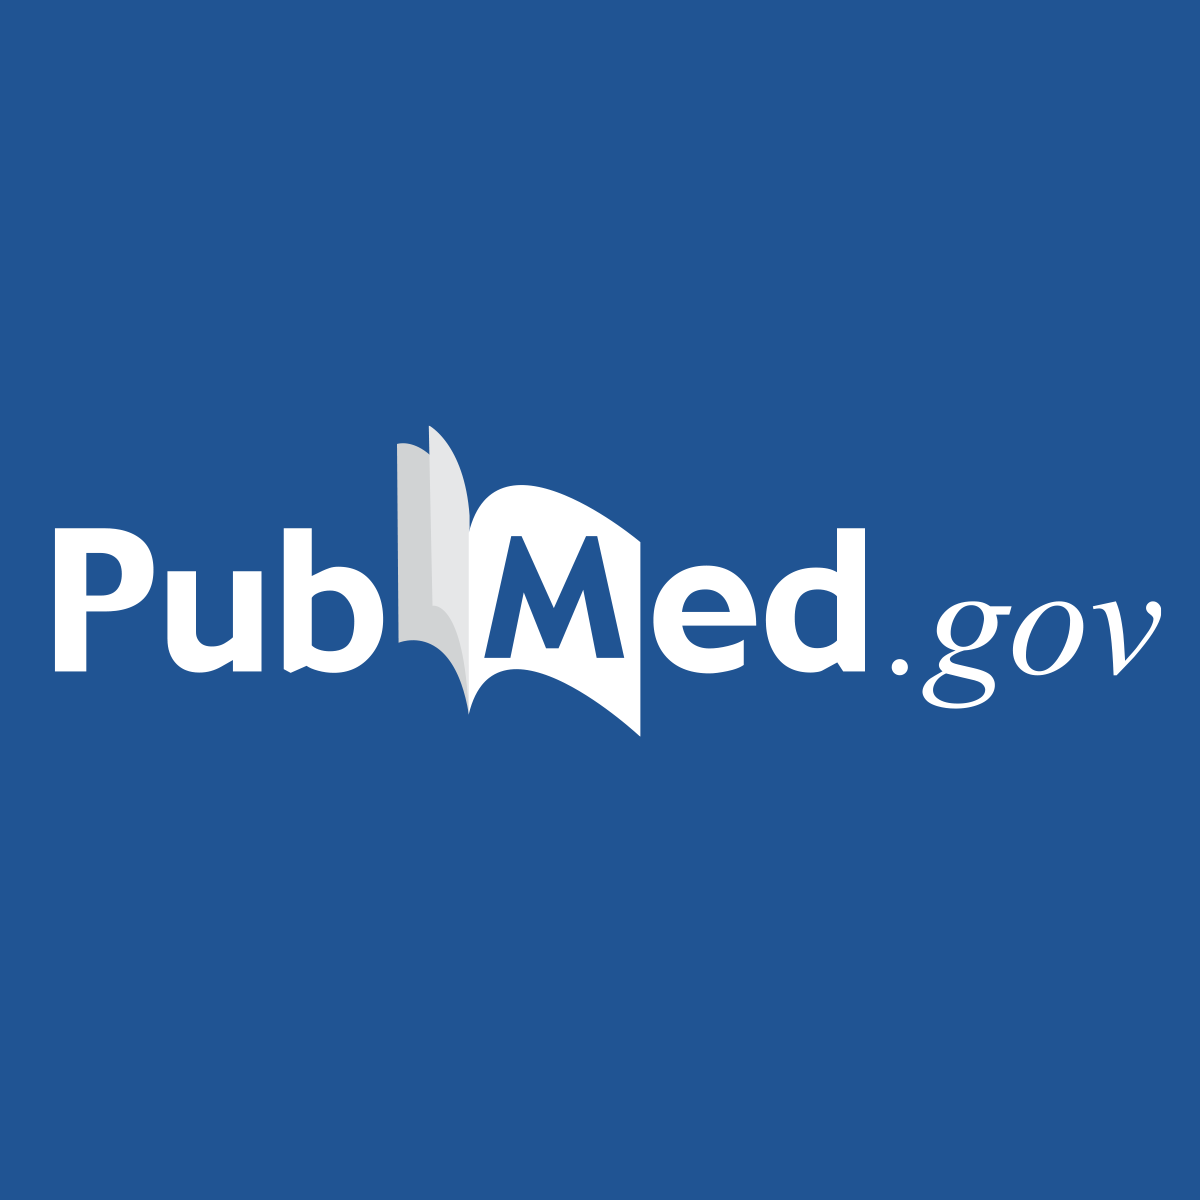 Optic nerve head plasmacytoma as a manifestation of multiple myeloma - PubMed